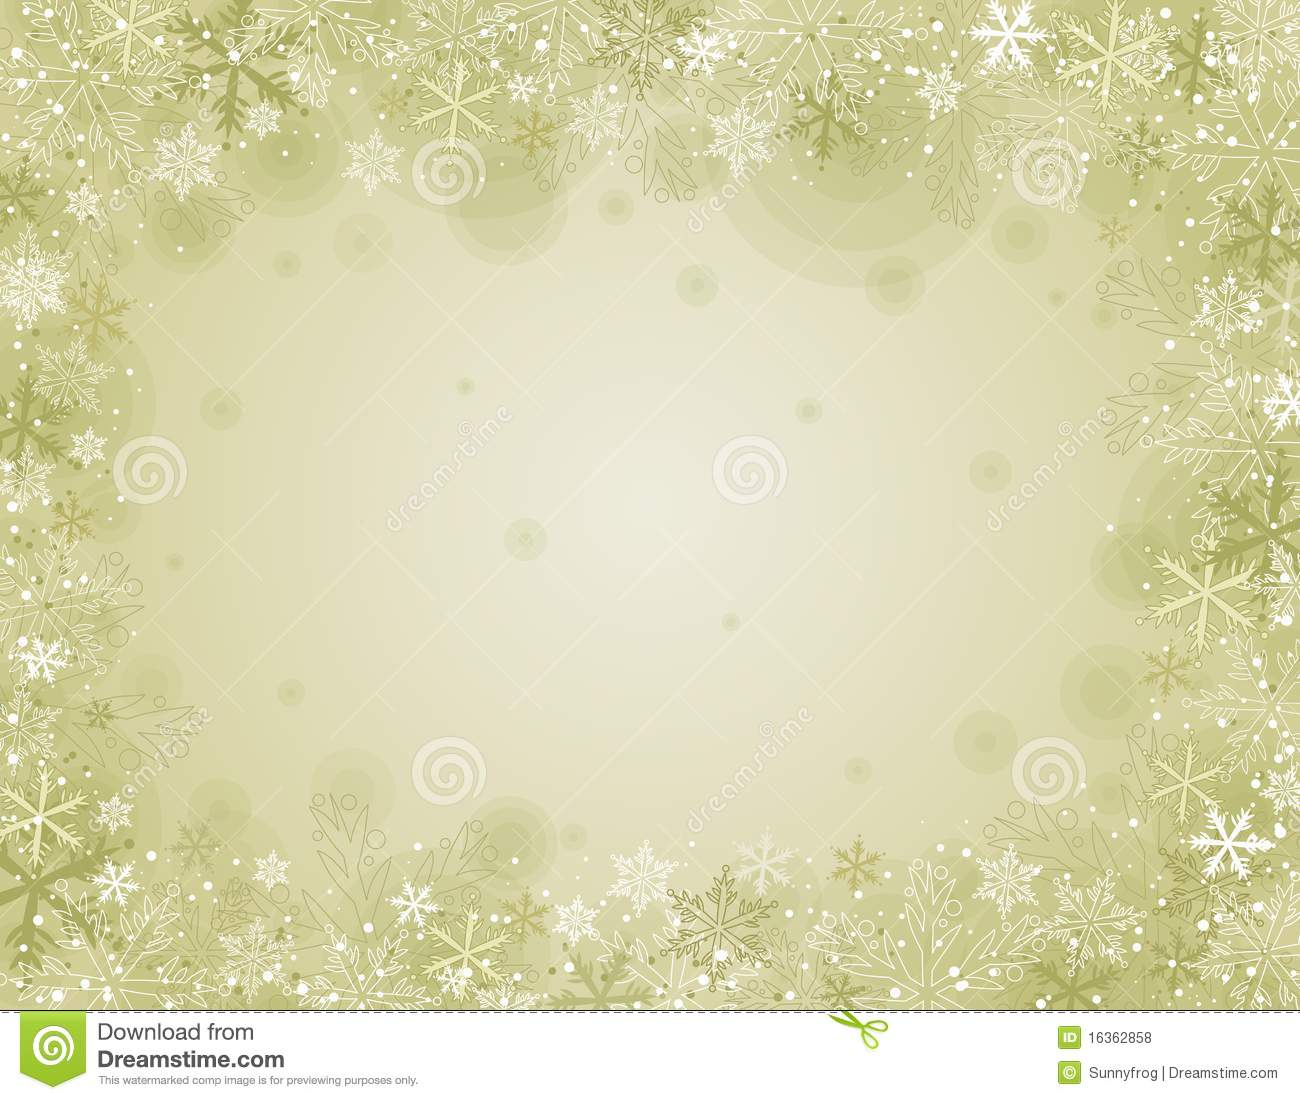 Beige Christmas Background Illustration Stock Vector